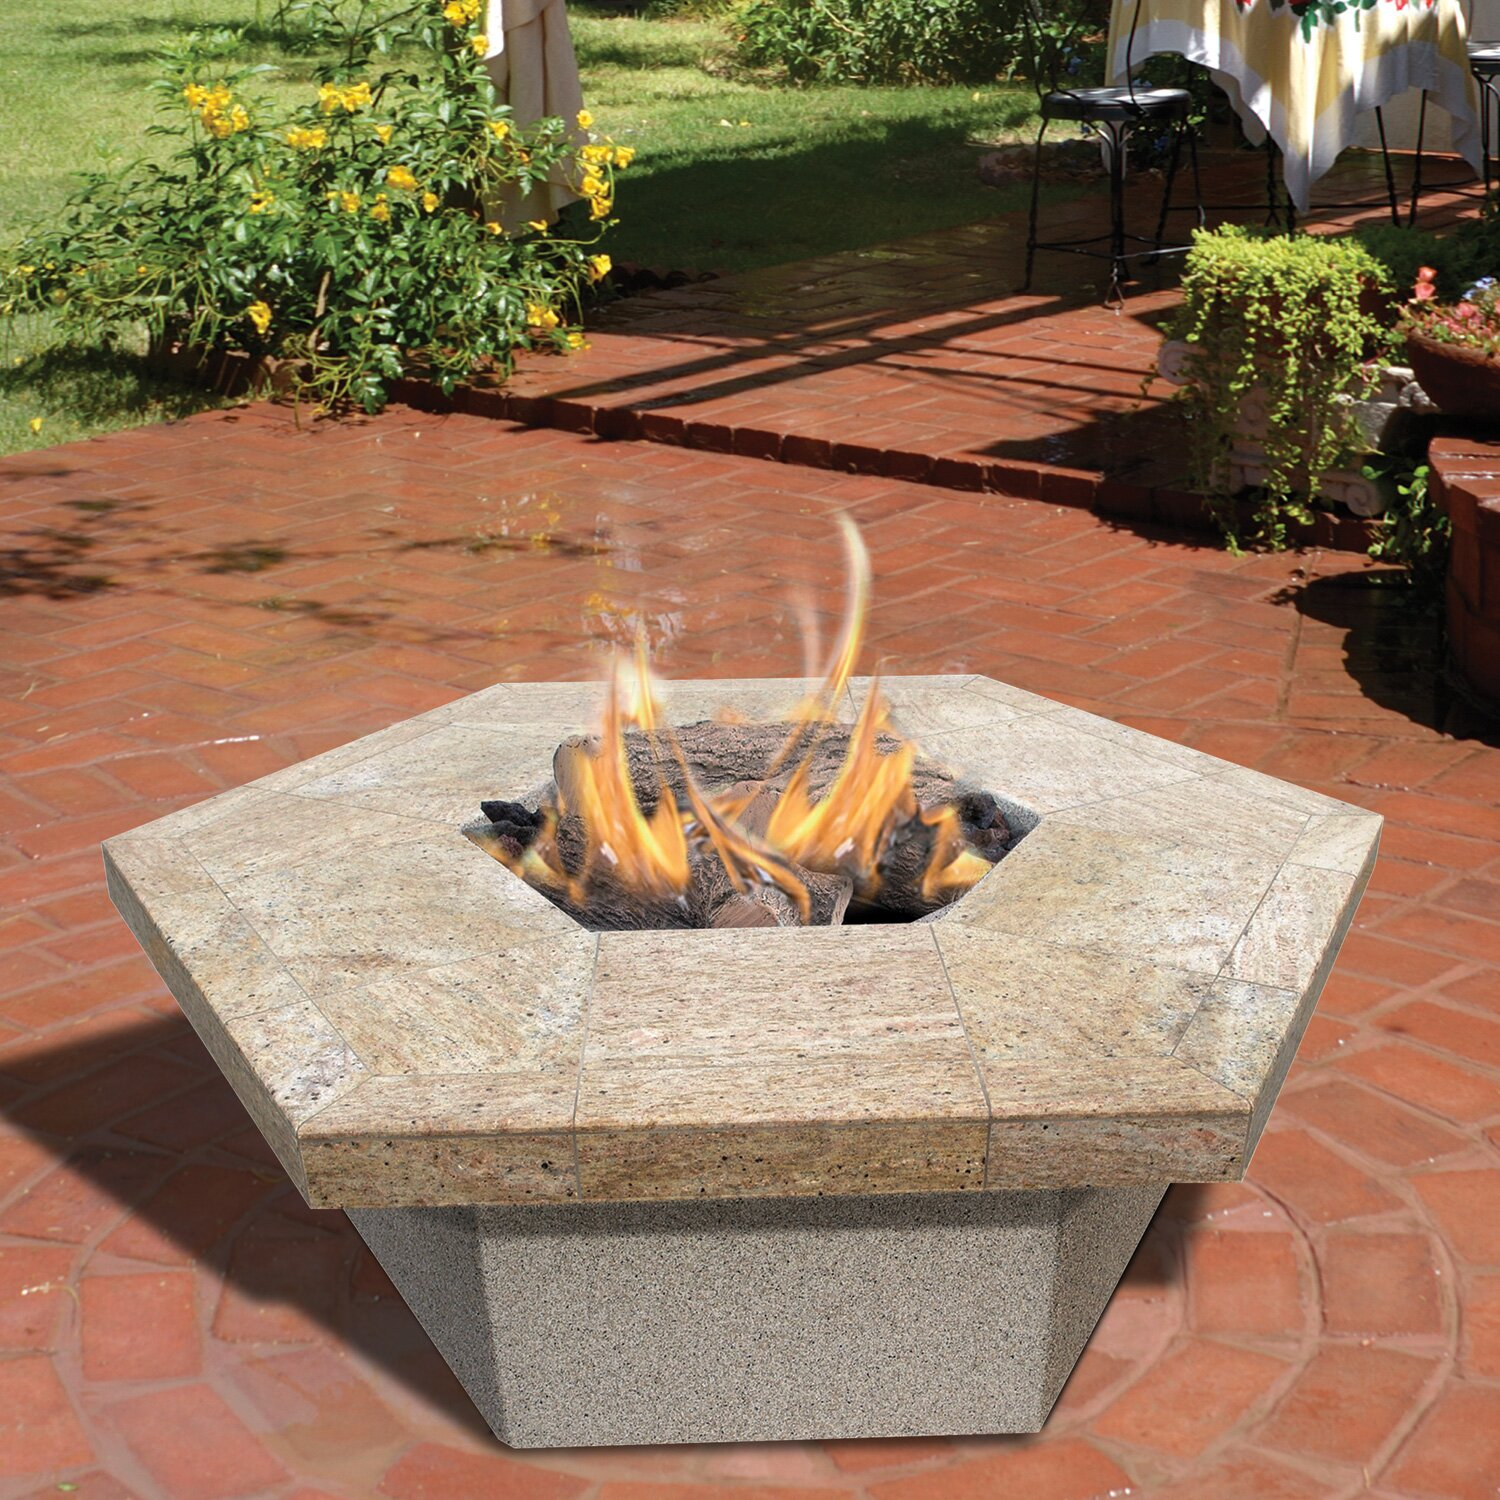 Square Dining Room Table For 12 Calflame Hexagon Gas Fire Pit Amp Reviews Wayfair